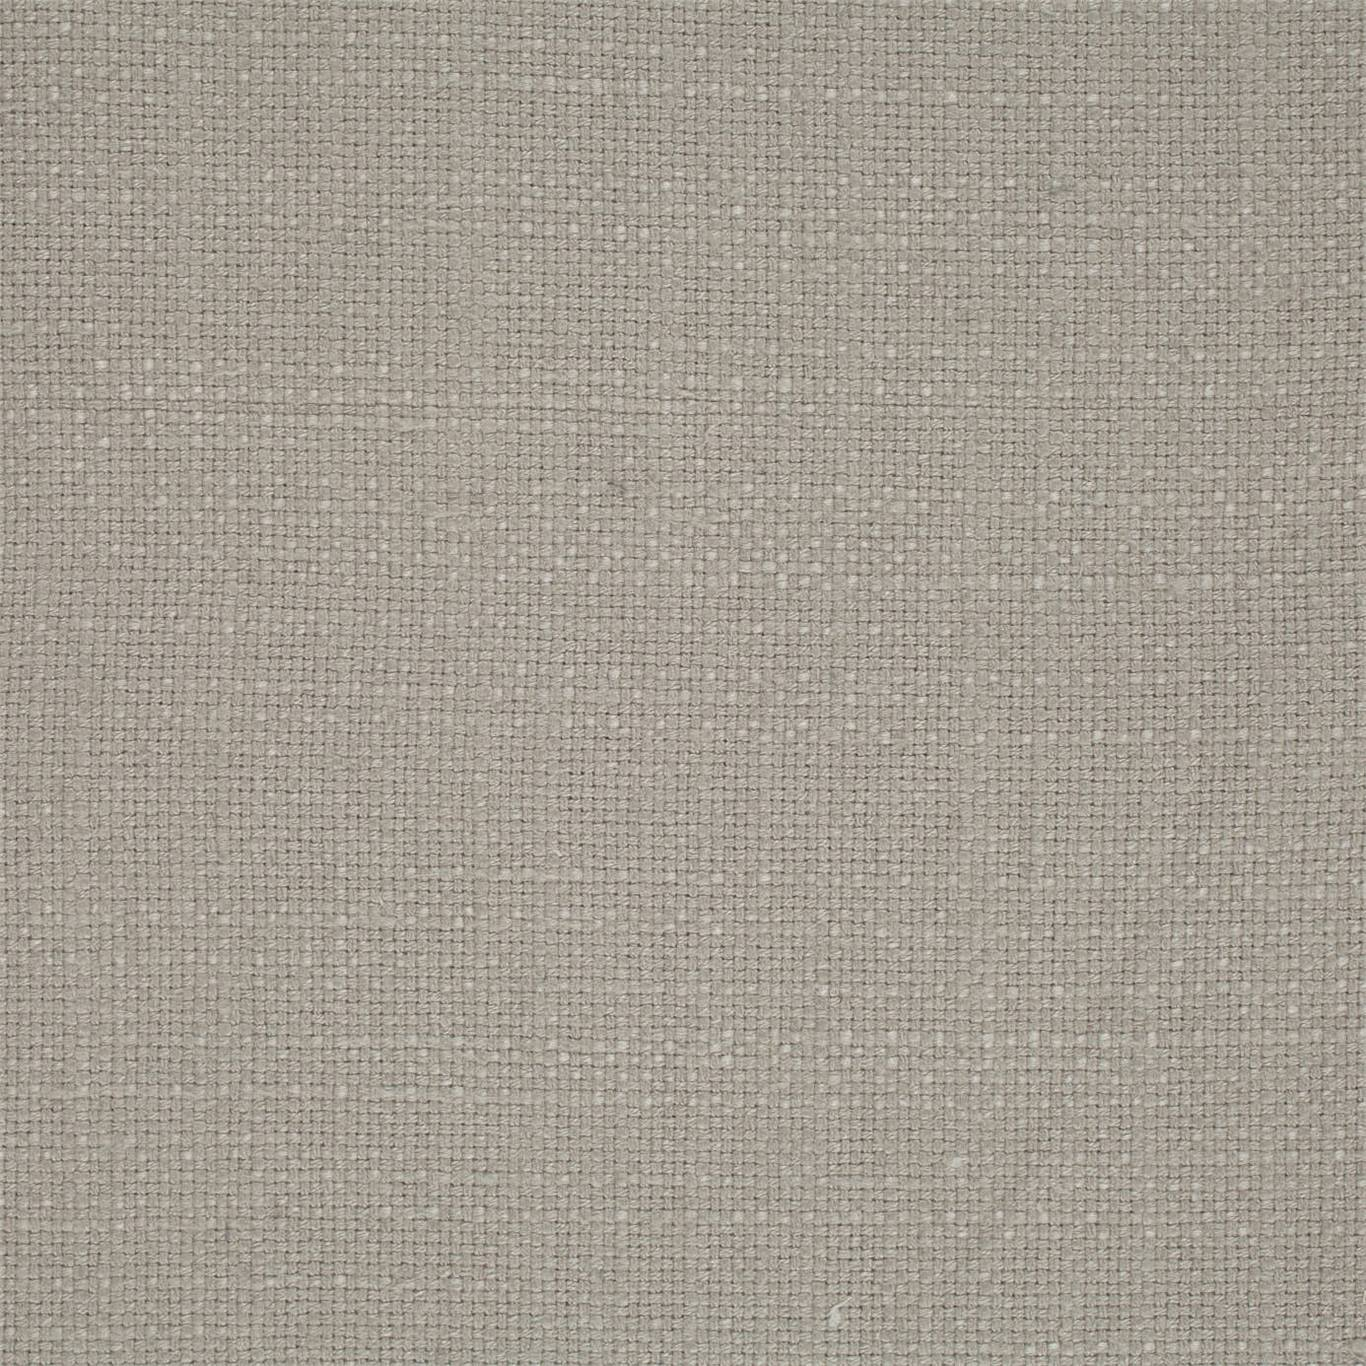 DTUC237126 Collection - Tuscany II Weaves Fabric